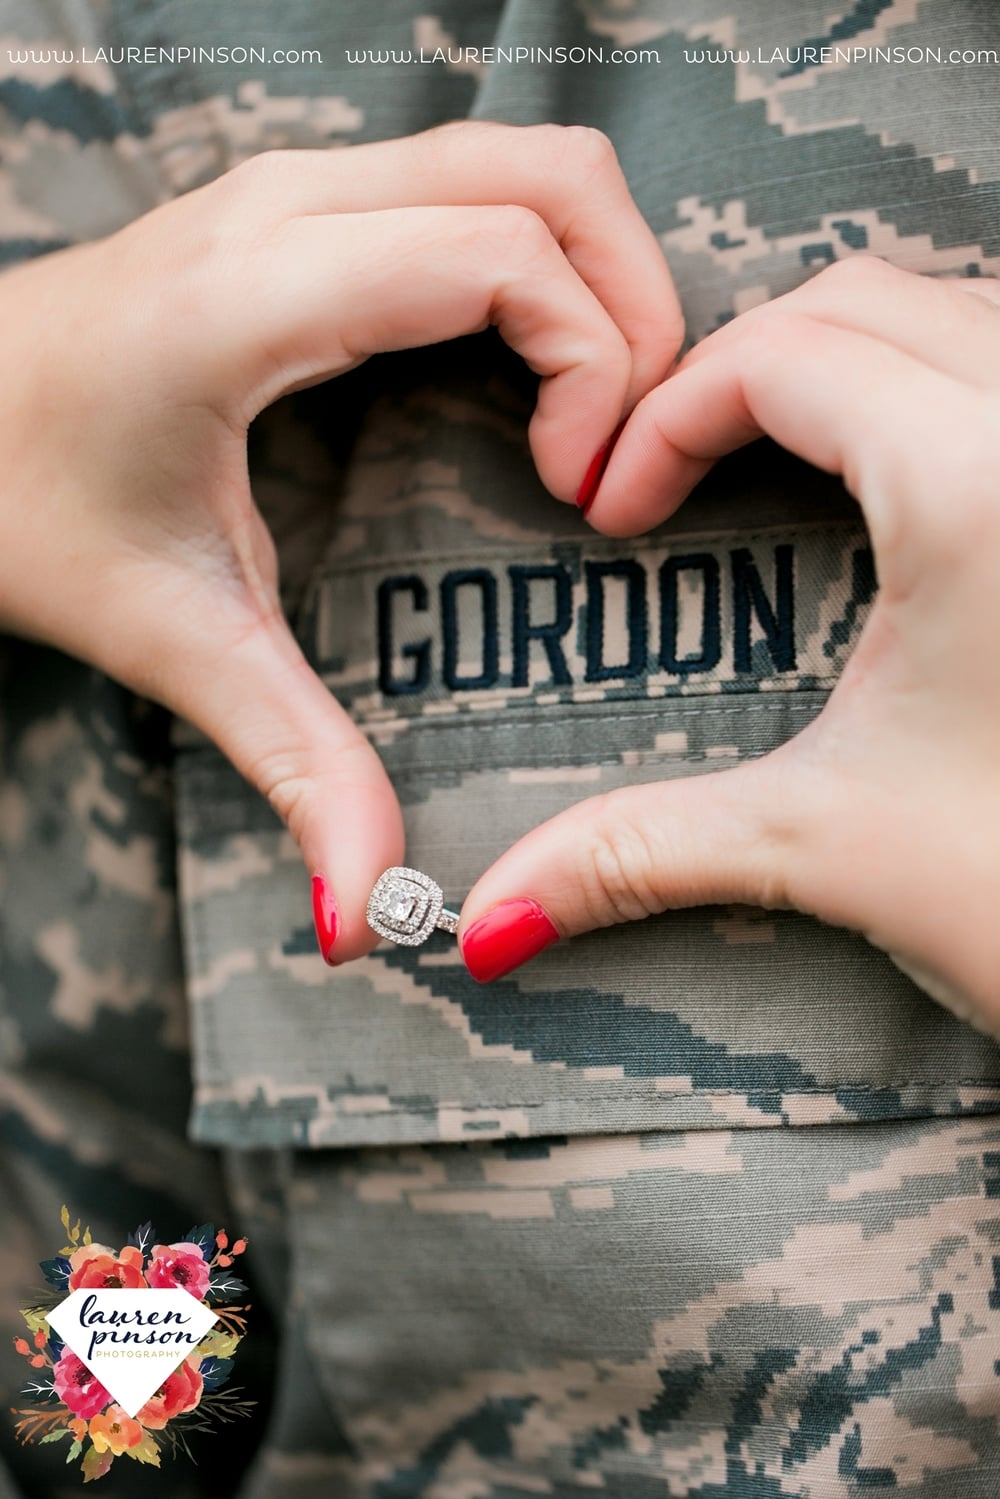 sheppard-afb-wichita-falls-engagement-session-airmen-in-uniform-abu-airplanes-bride-engagement-ring-texas-air-force-base_2000.jpg